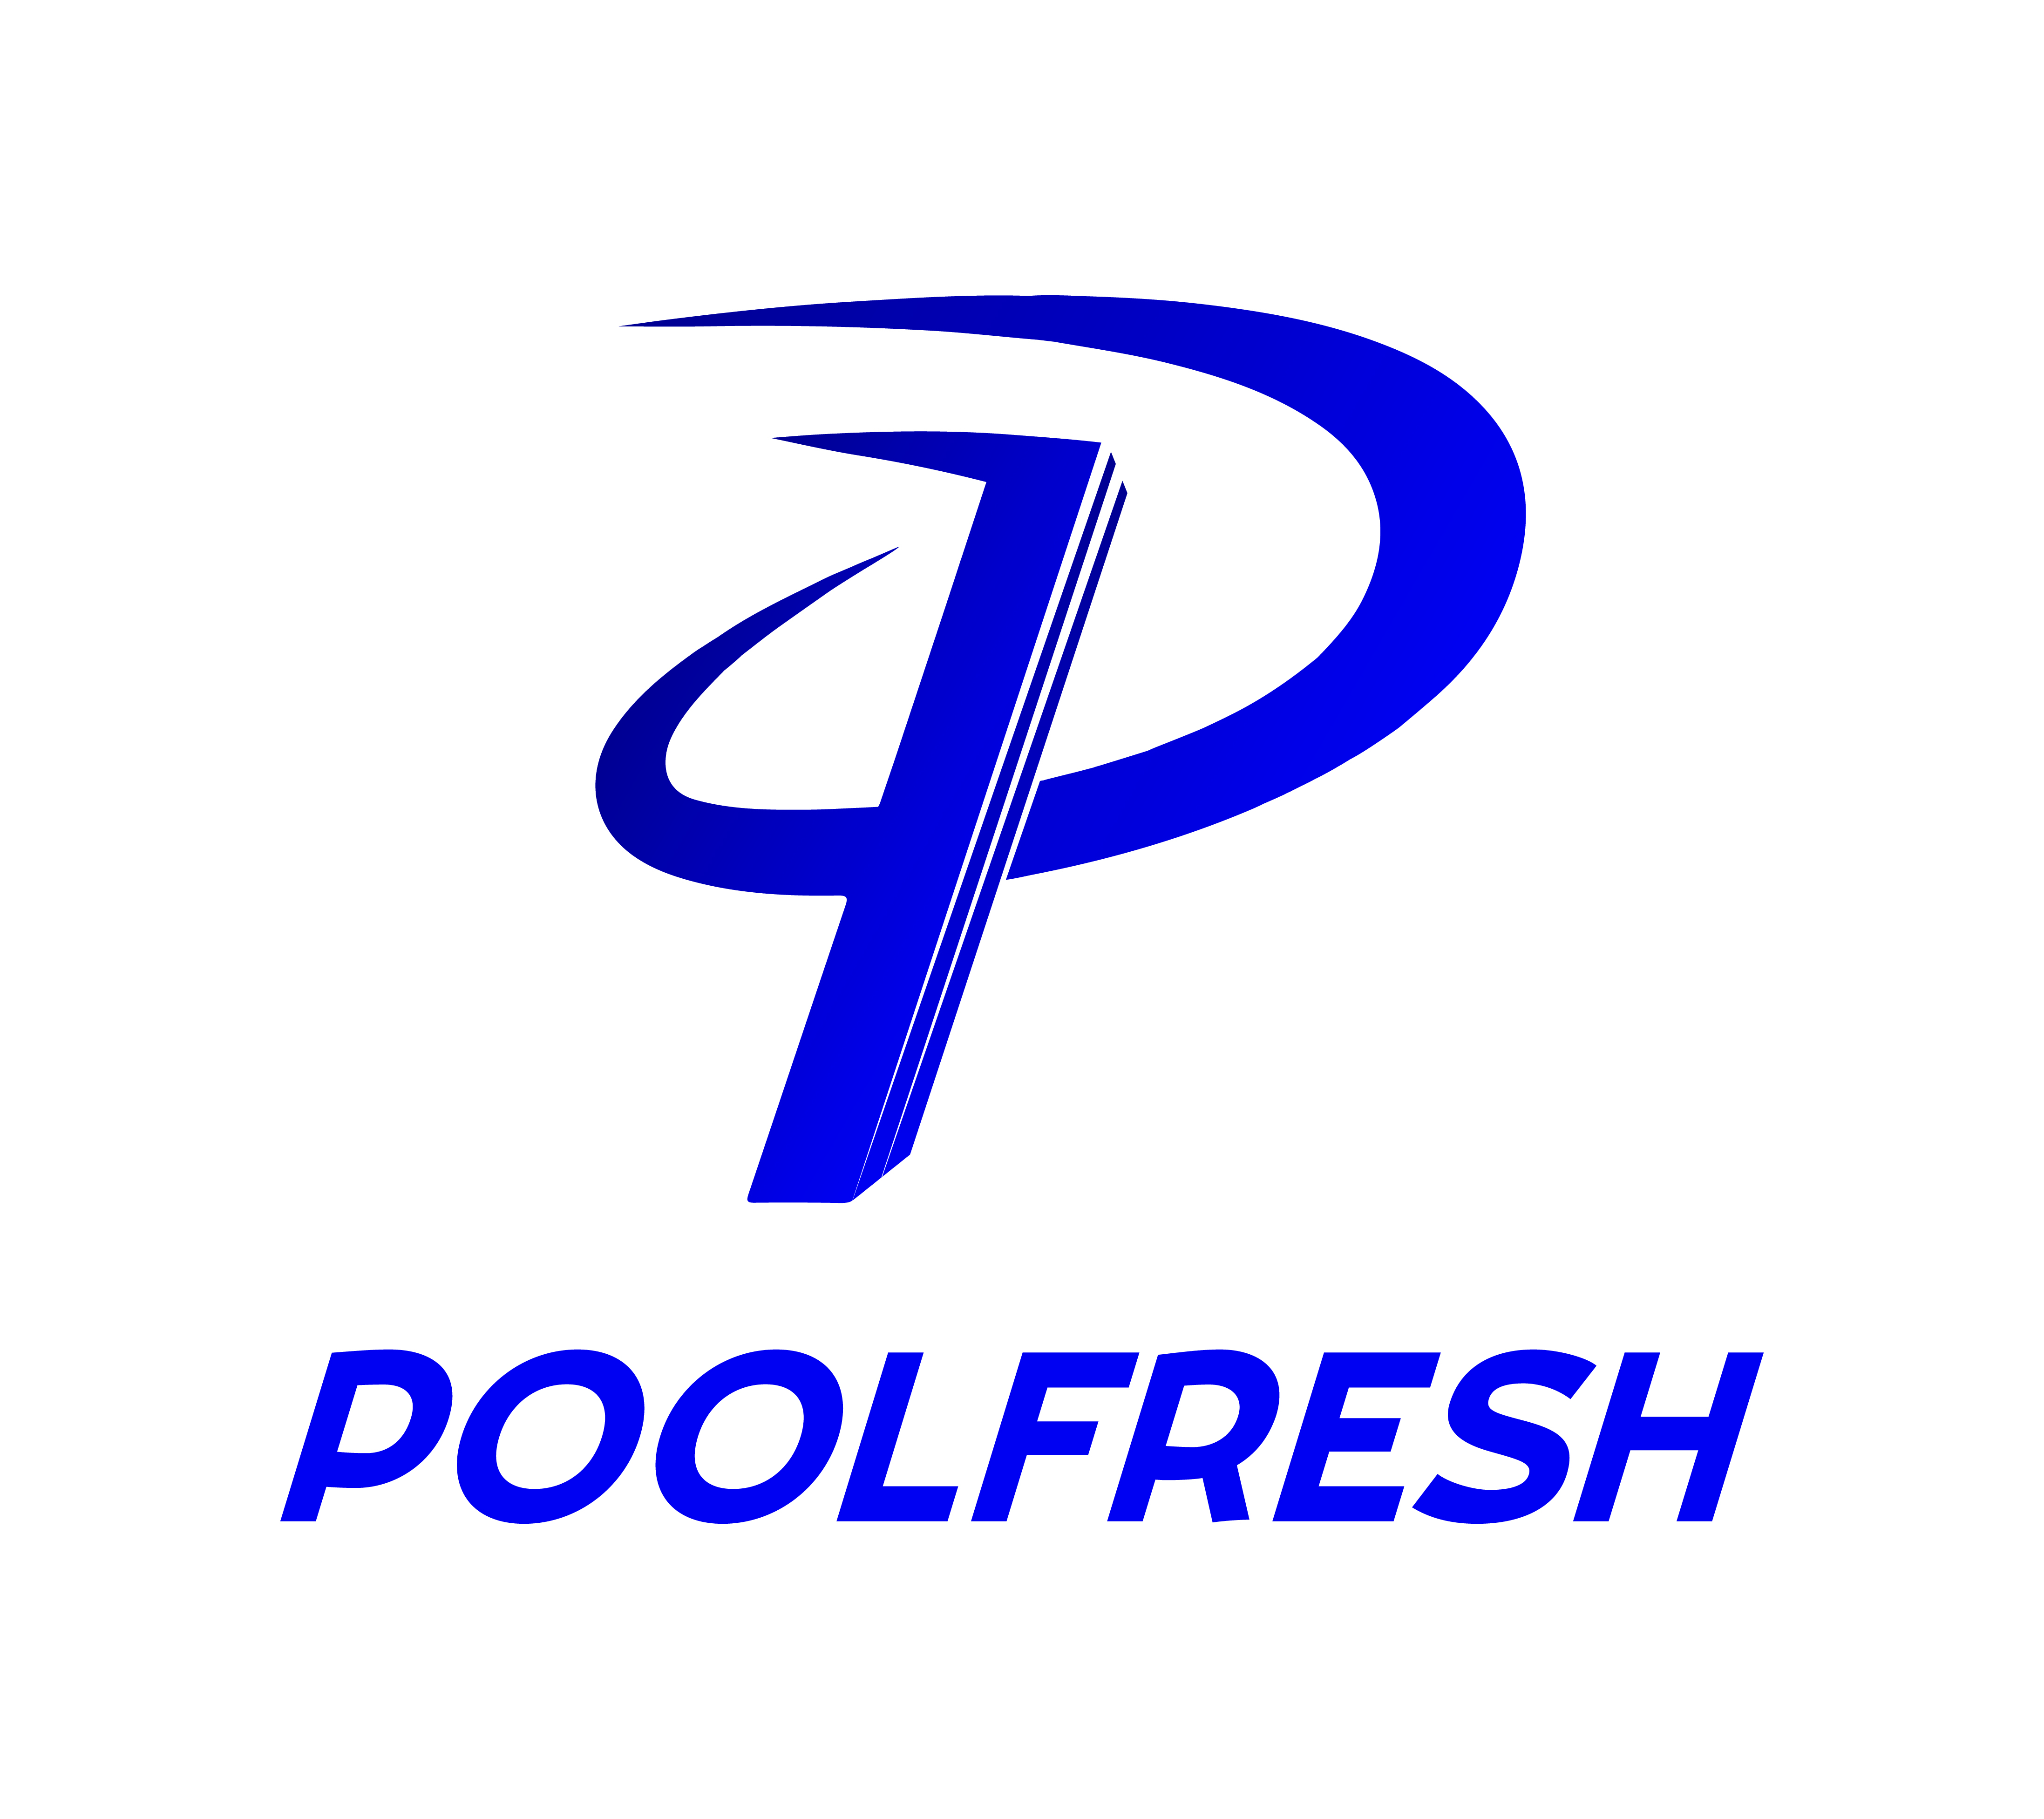 Poolfresh Logo